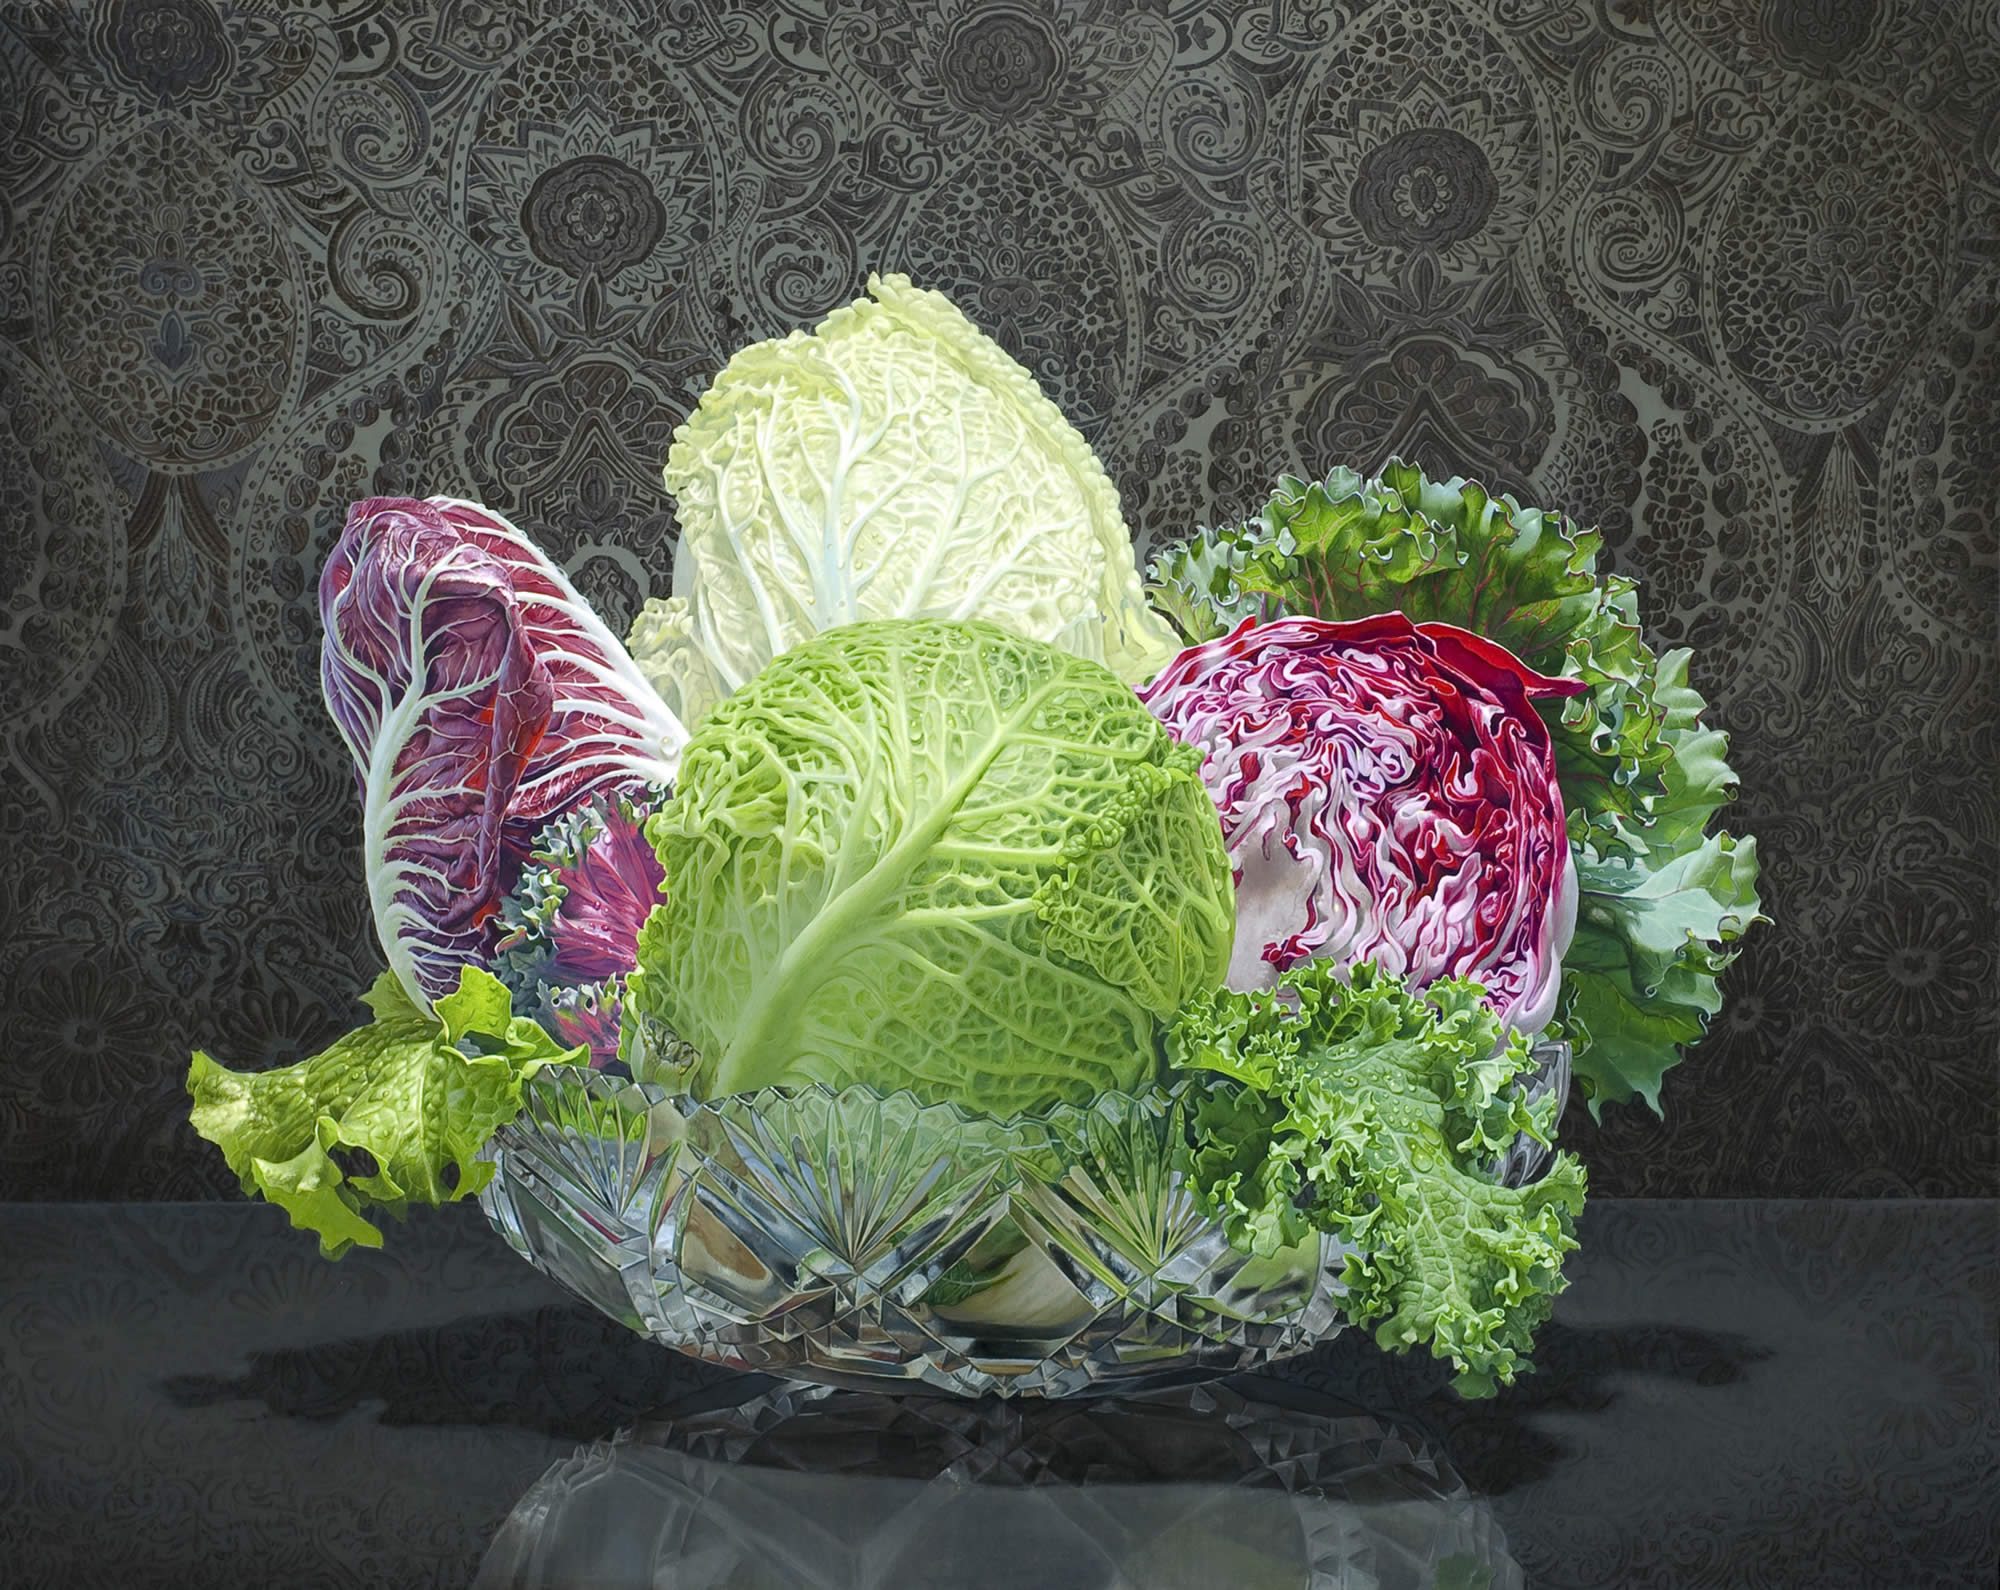 Eric Wert's Beautiful Still Lifes of Fruit and Vegetables